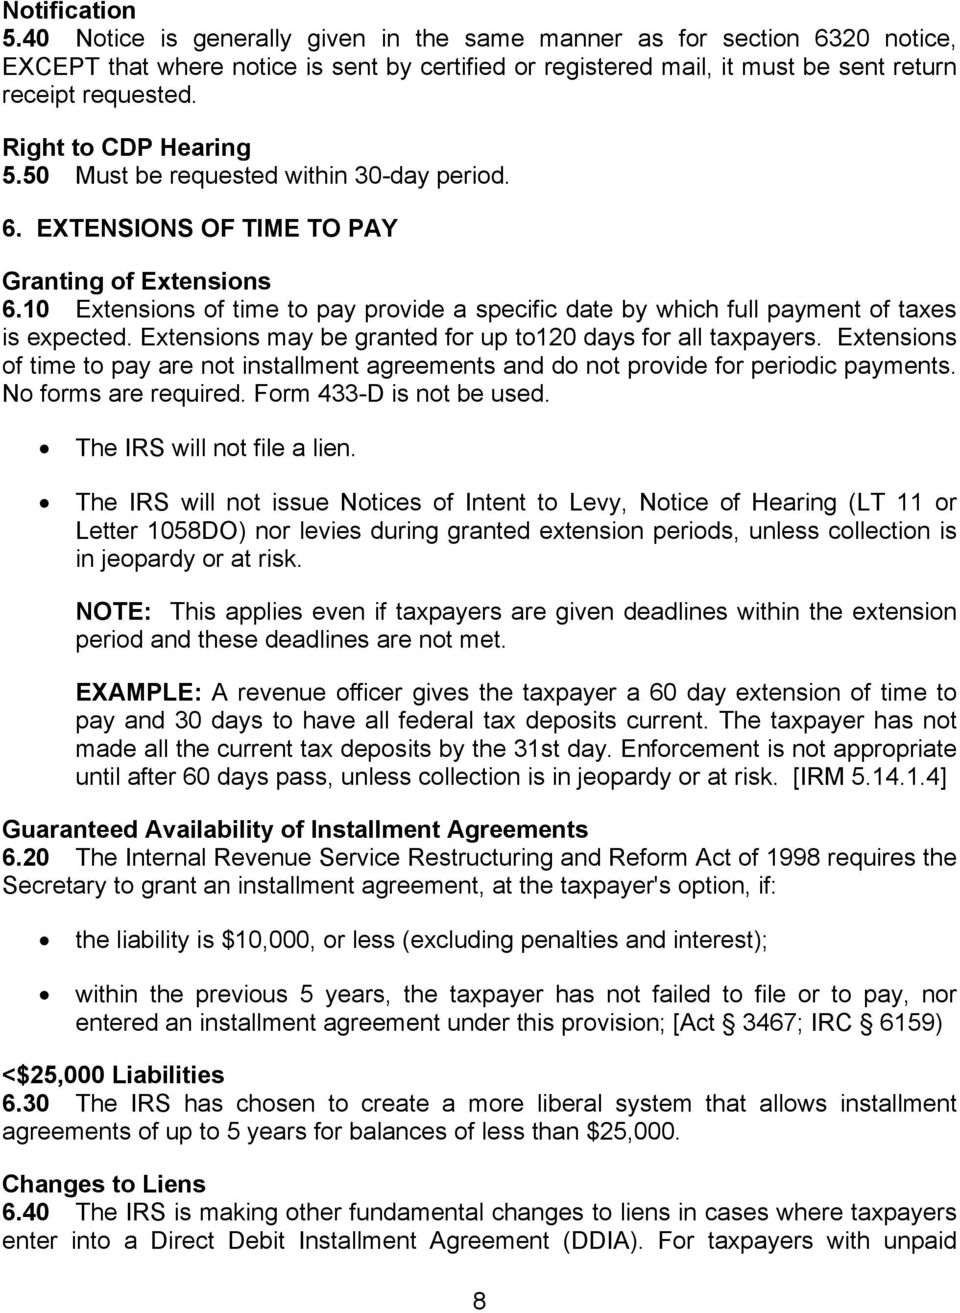 10 Extensions of time to pay provide a specific date by which full payment of taxes is expected. Extensions may be granted for up to120 days for all taxpayers.